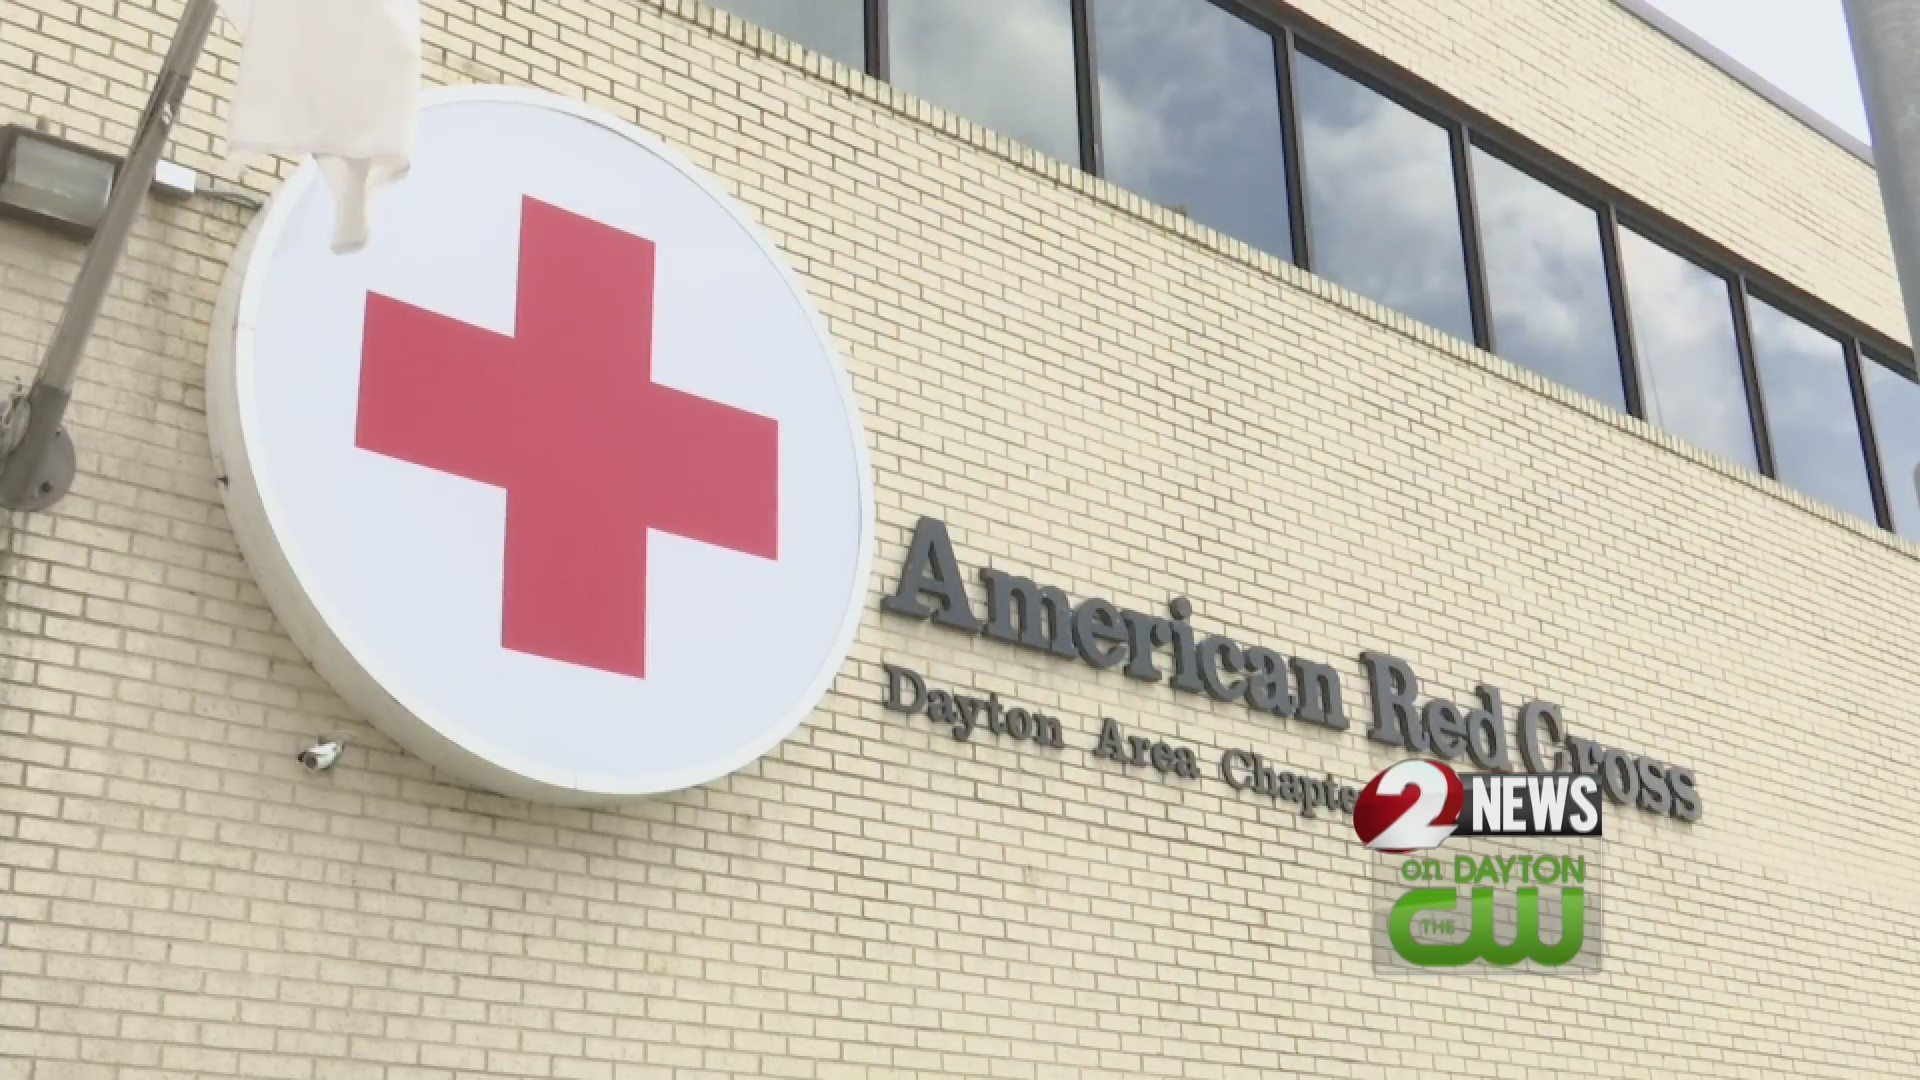 Dayton_area_Red_Cross_volunteers_head_to_0_20190524022729